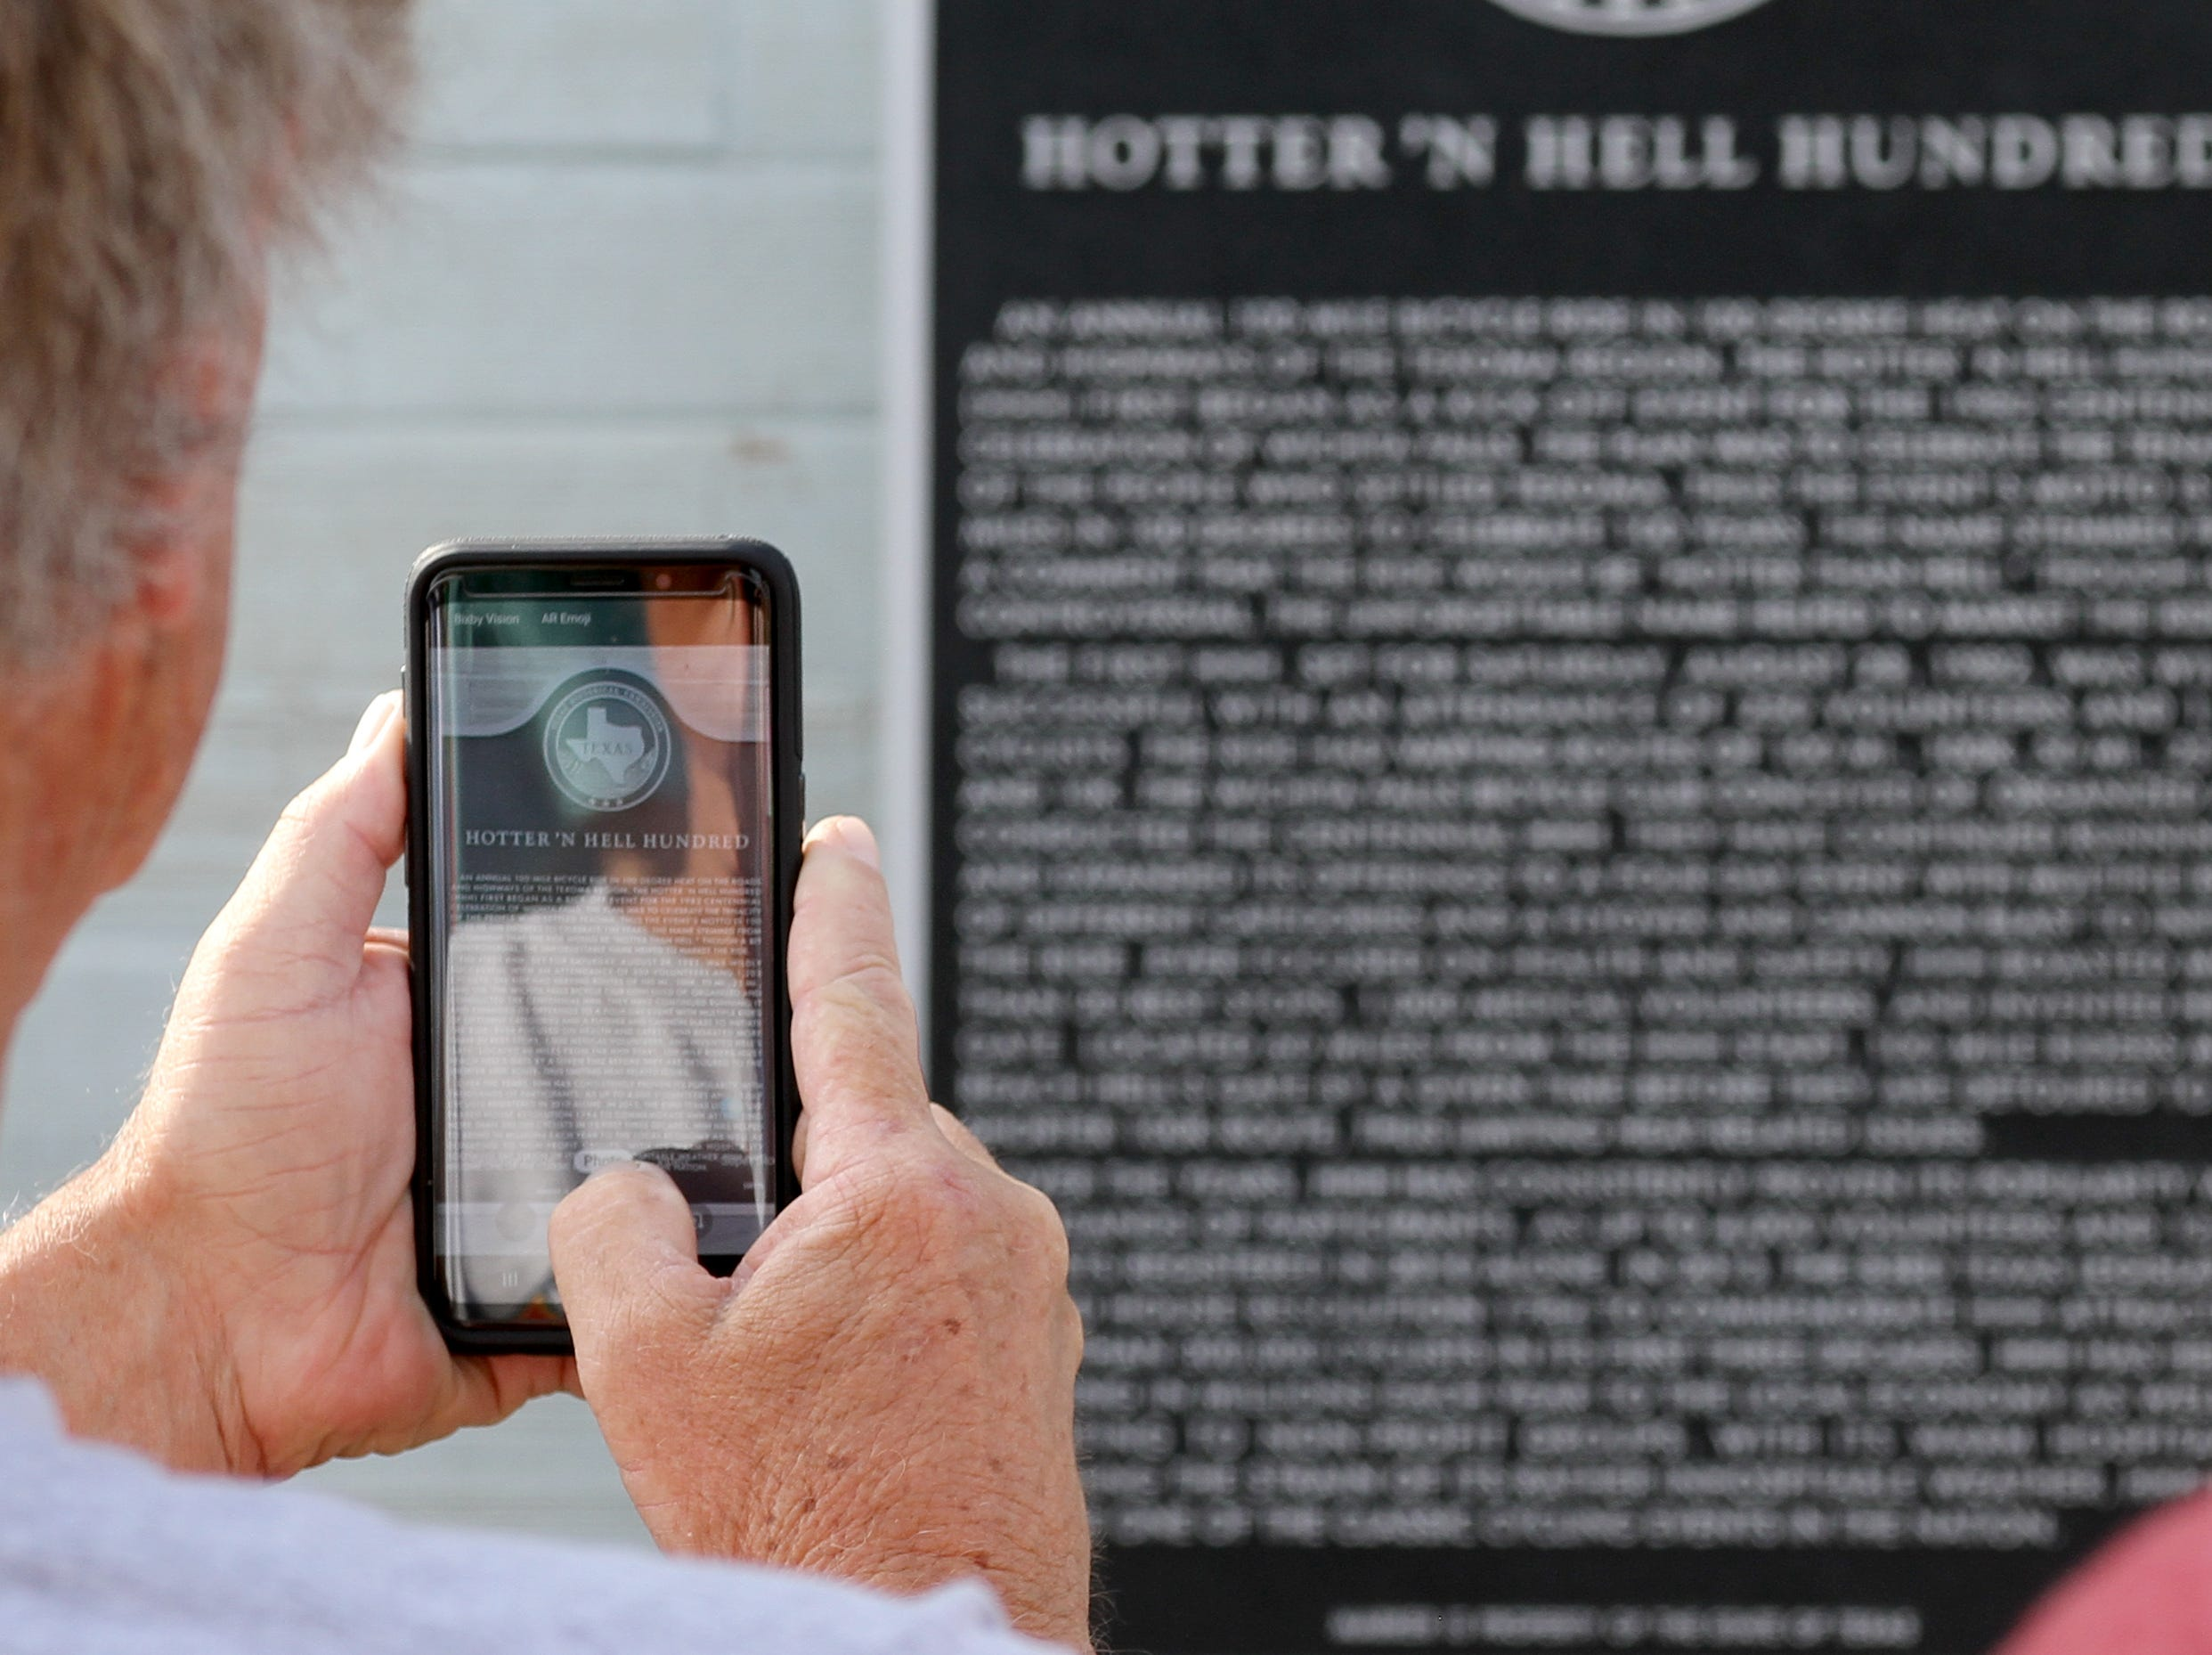 The Wichita County Historical Commission recognized the the Hotter'N Hell Hundred Monday, May 6, 2019, with an Official Texas Historical Marker at a dedication ceremony at the Hotter'N Hell Clubhouse at 104 Scott.